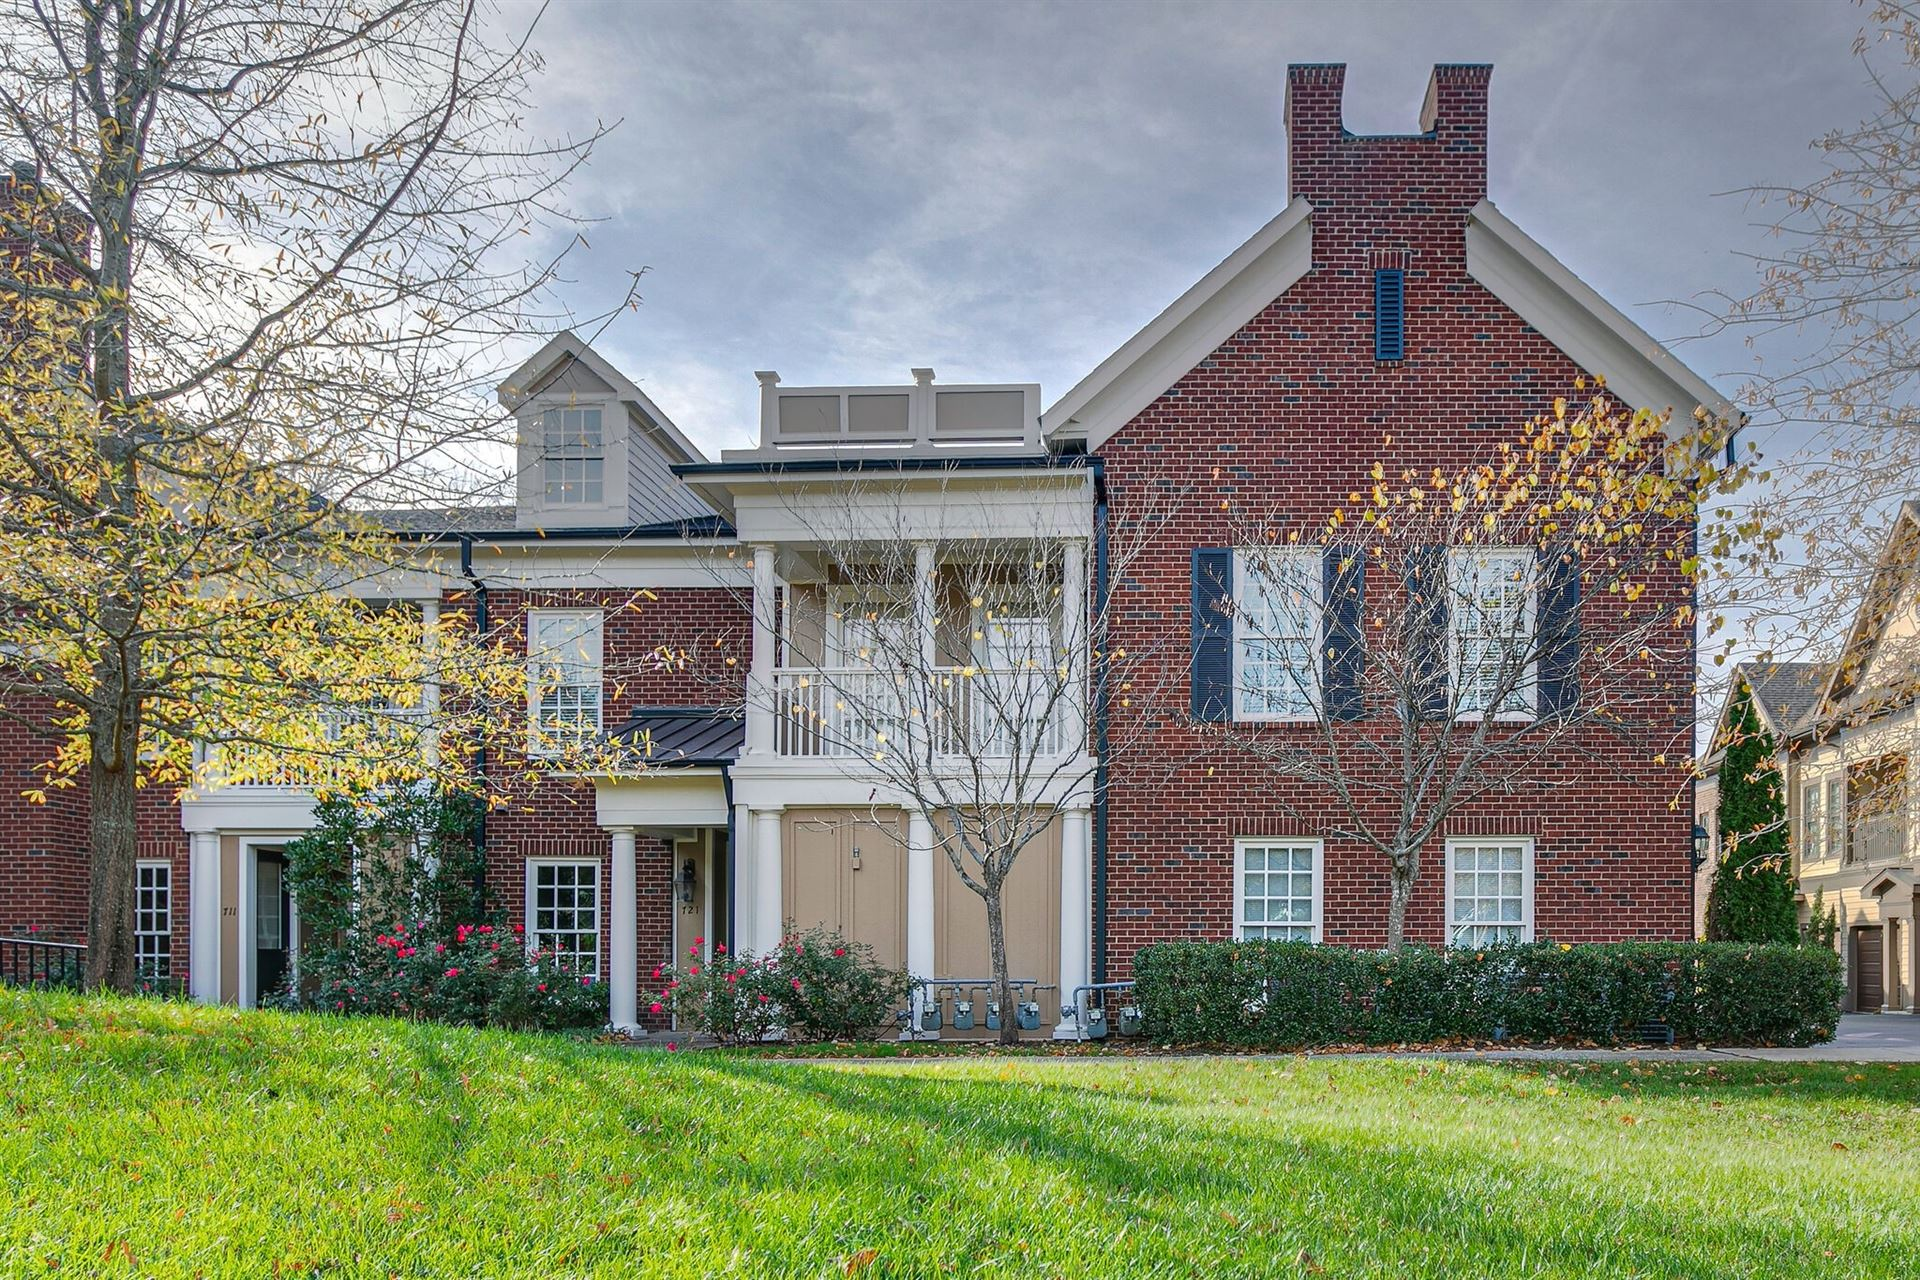 Photo of 723 Grant Park Ct, Franklin, TN 37067 (MLS # 2252380)